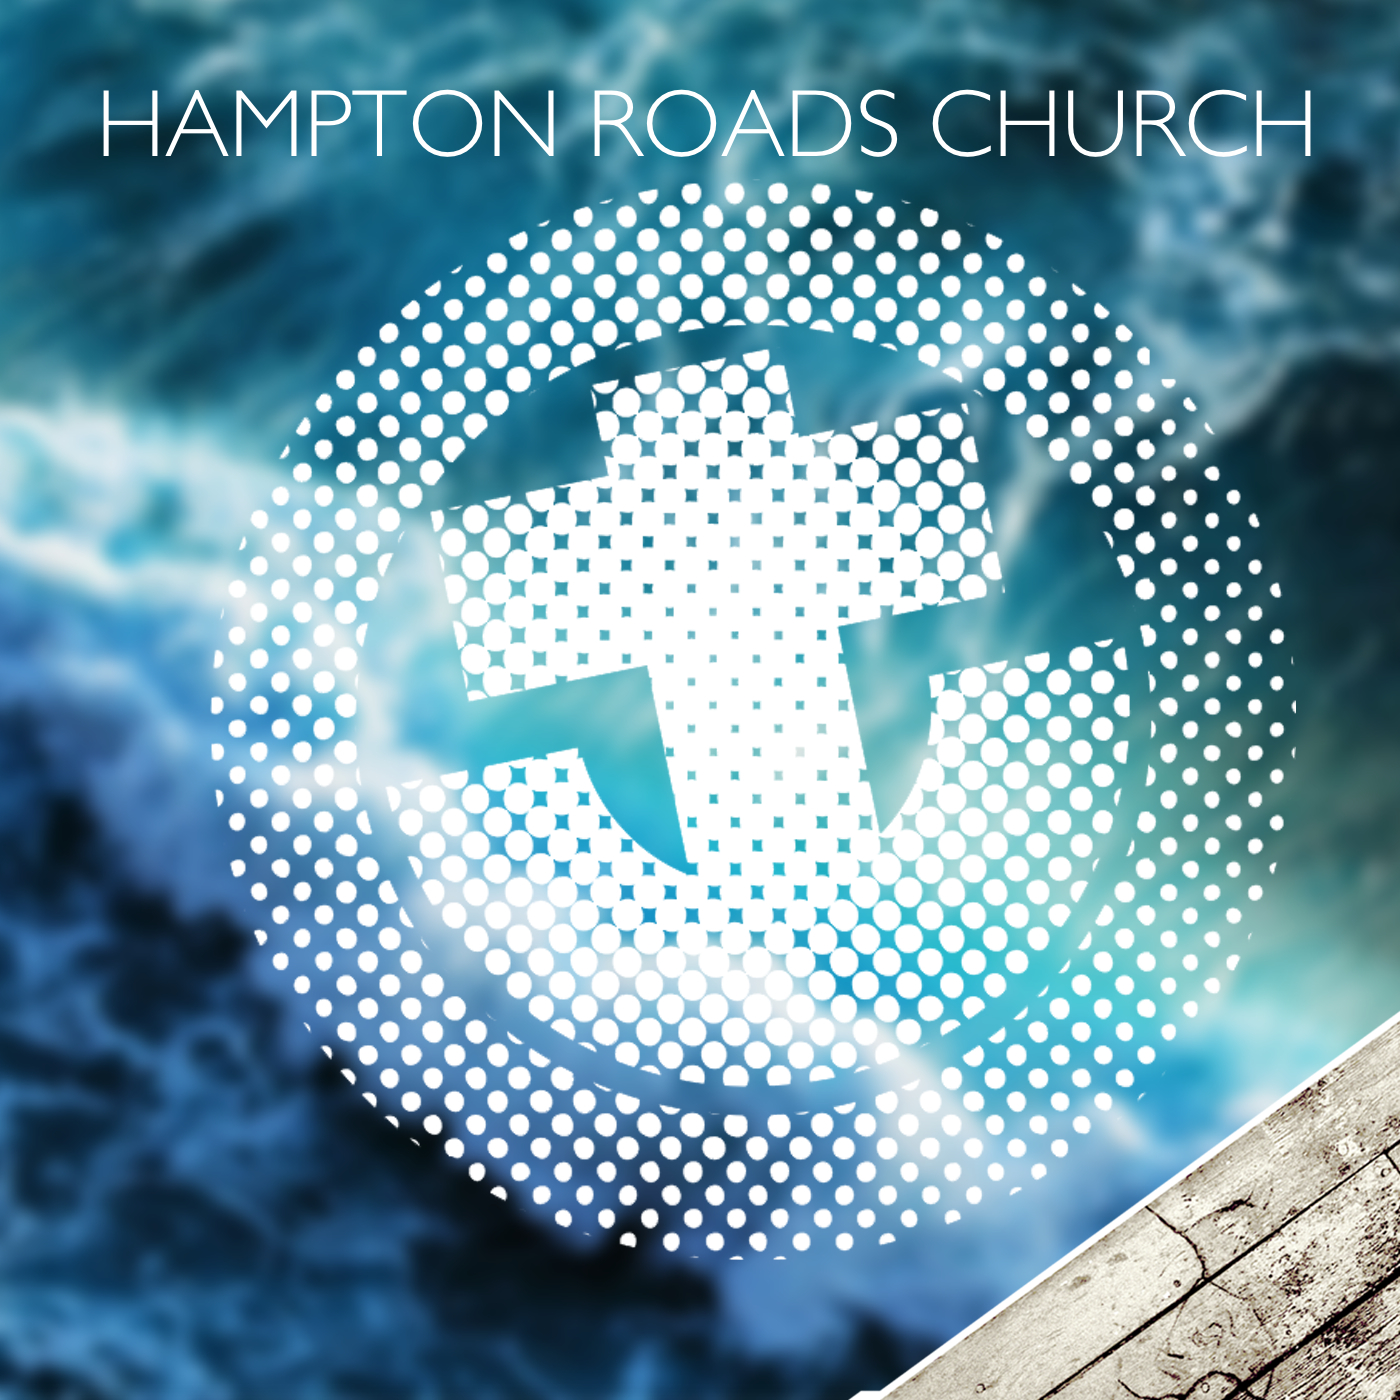 Luke - HAMPTON ROADS CHURCH